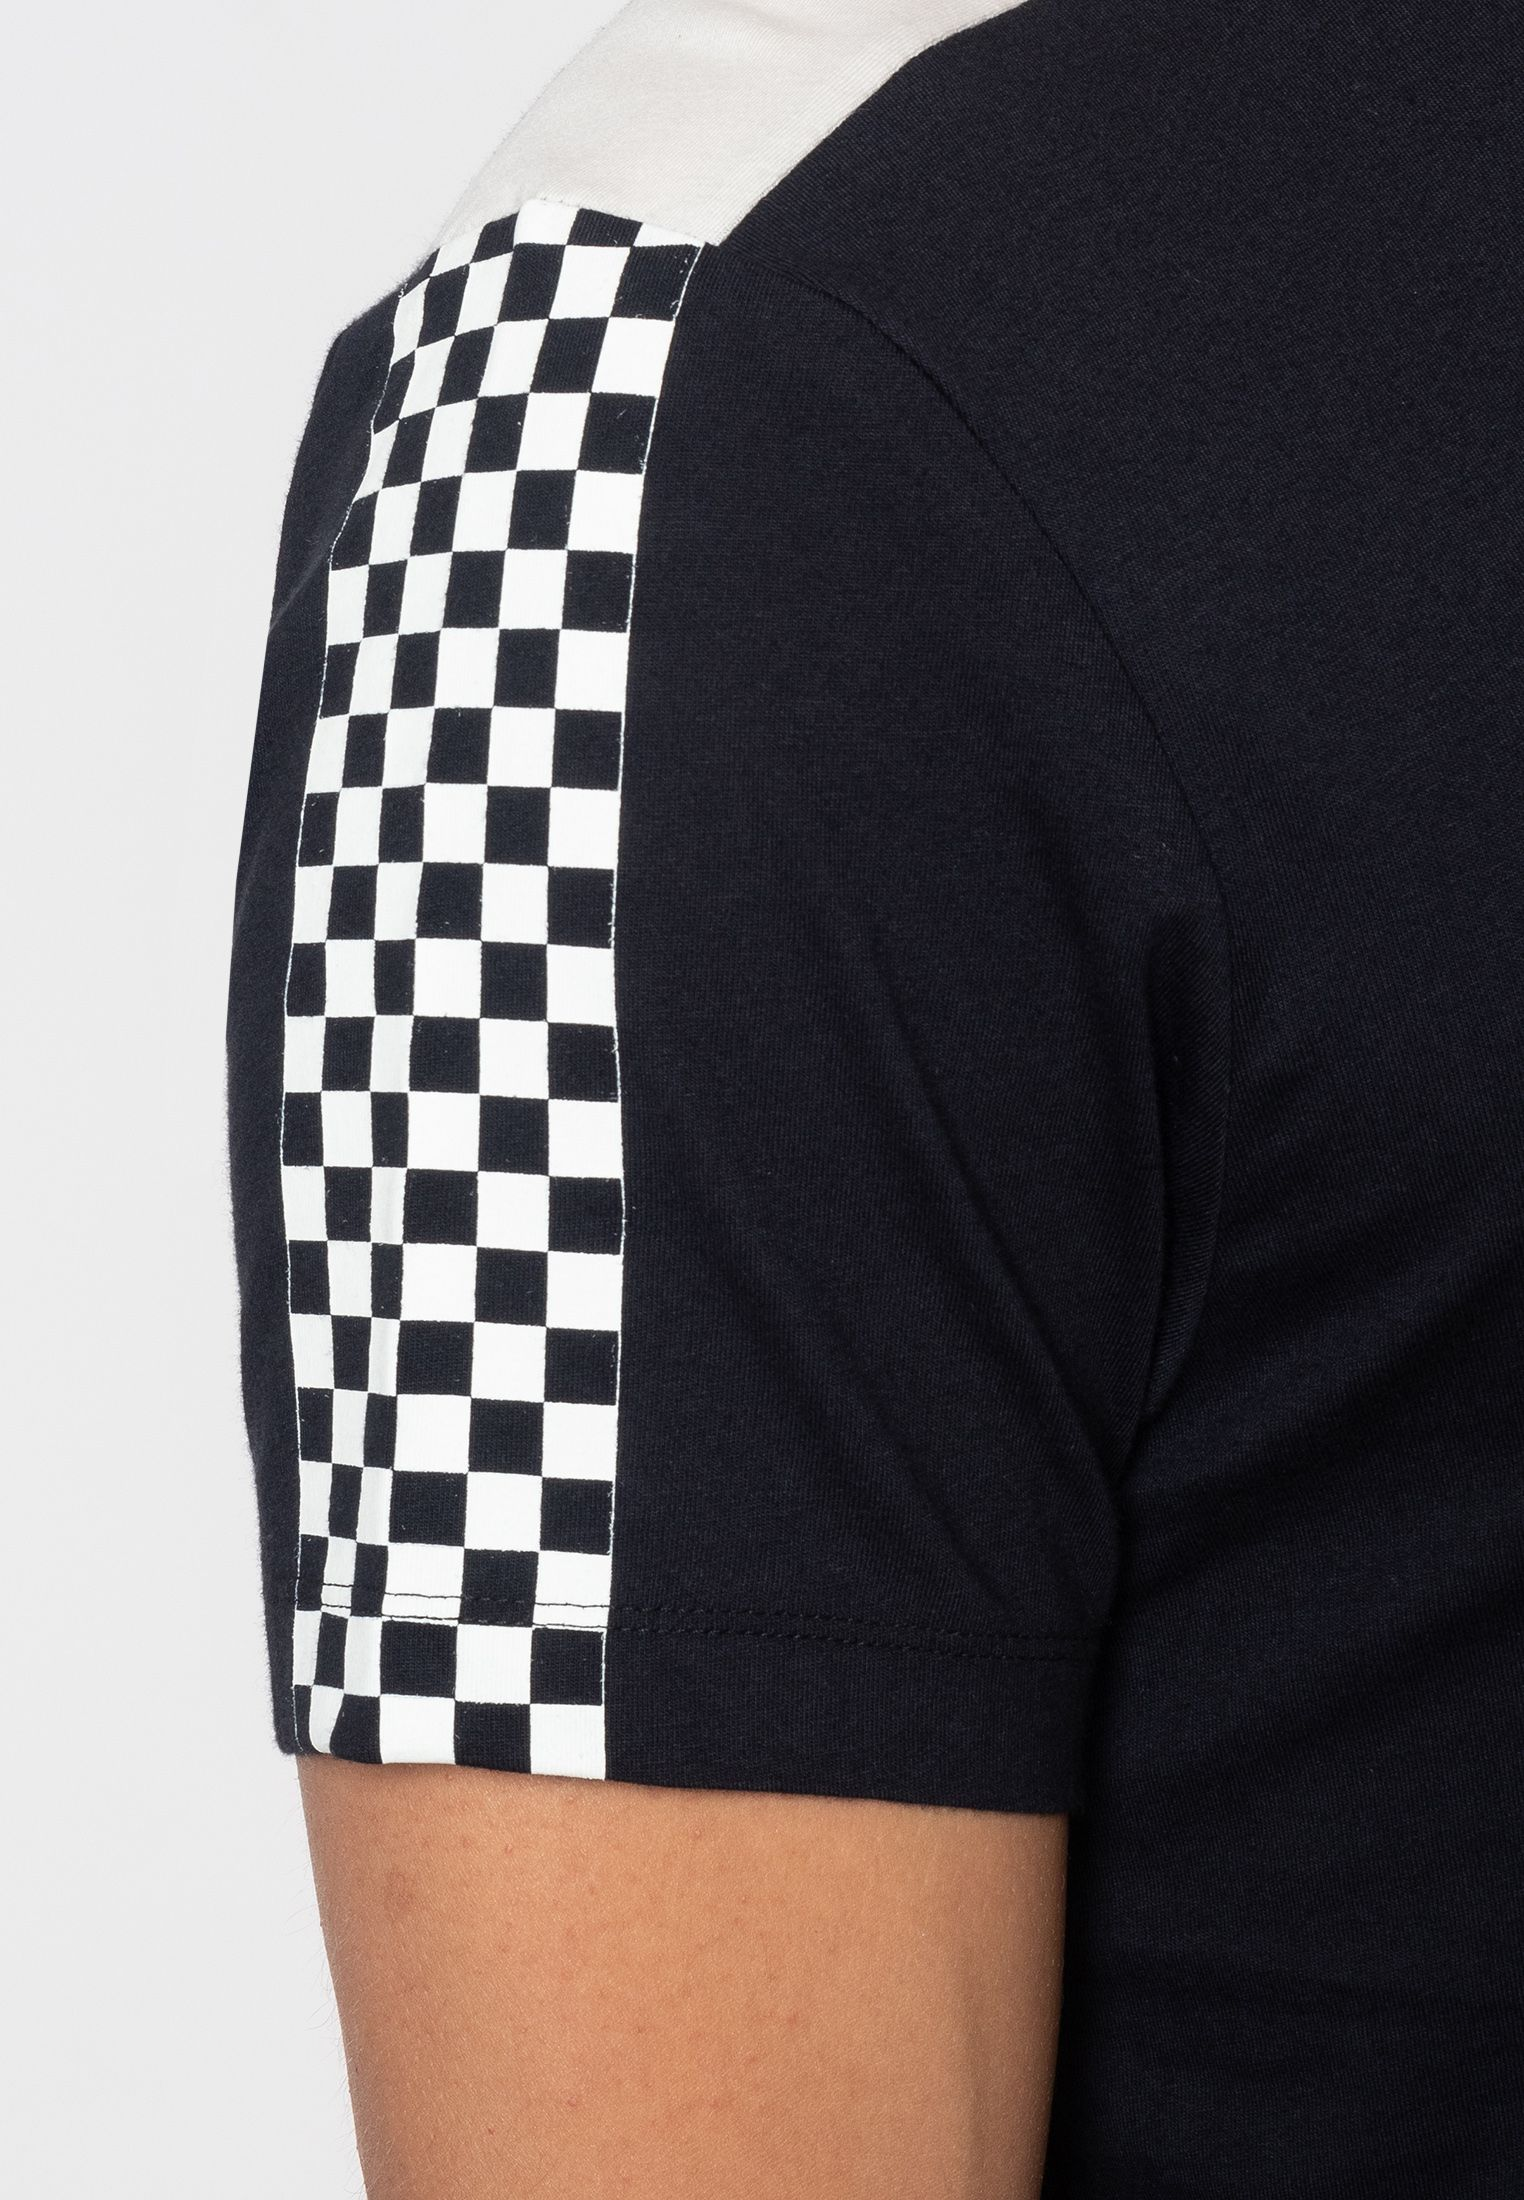 Hillgate Ska Print T-Shirt With Short Sleeves And Round Neck Collar In Dark Navy